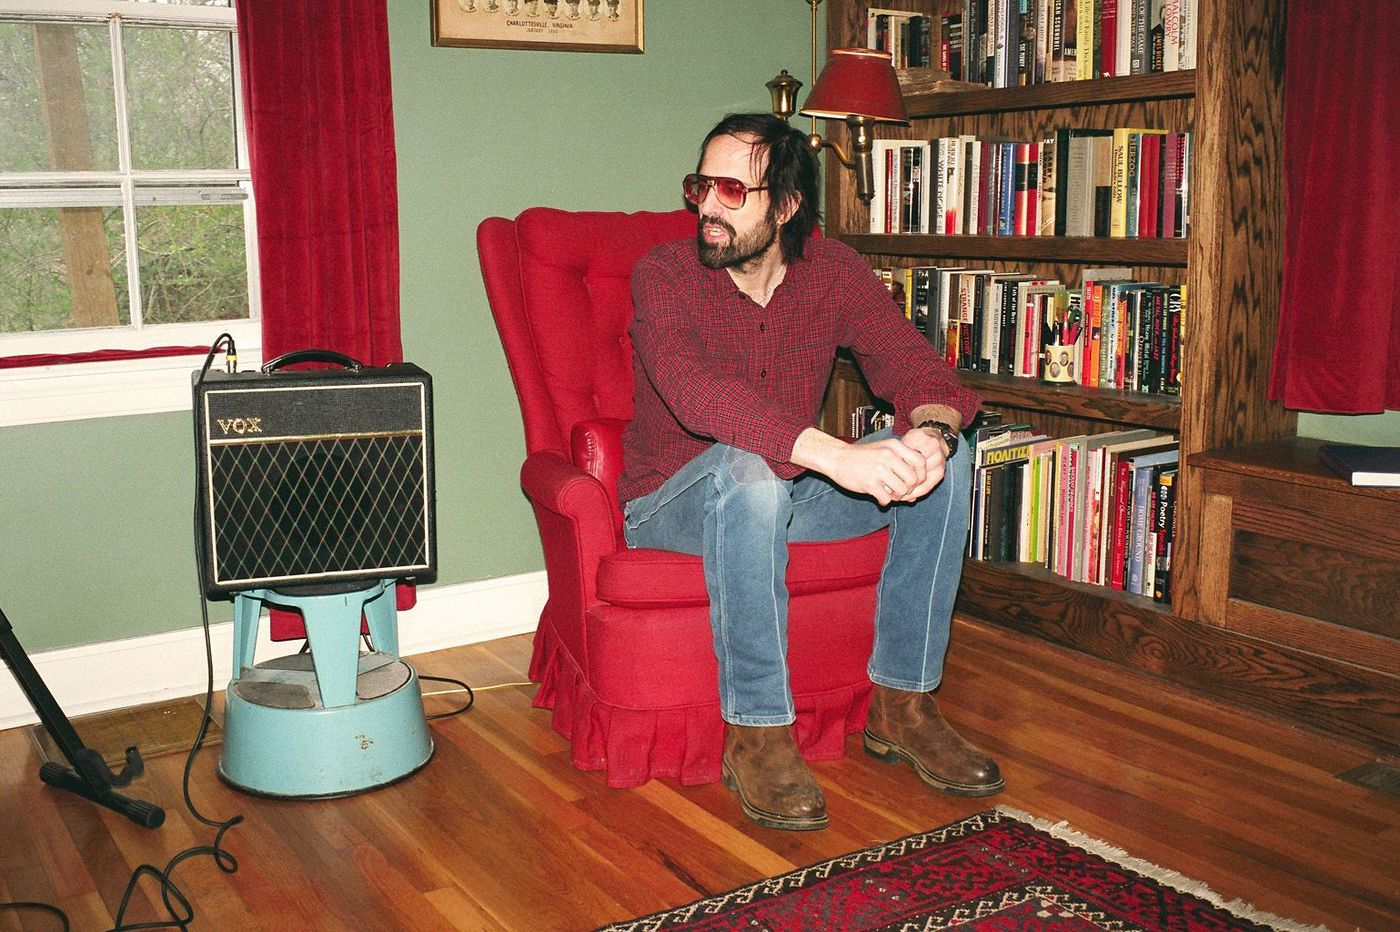 After the August death of David Berman, musicians will pay tribute in a Saturday World Cafe Live concert